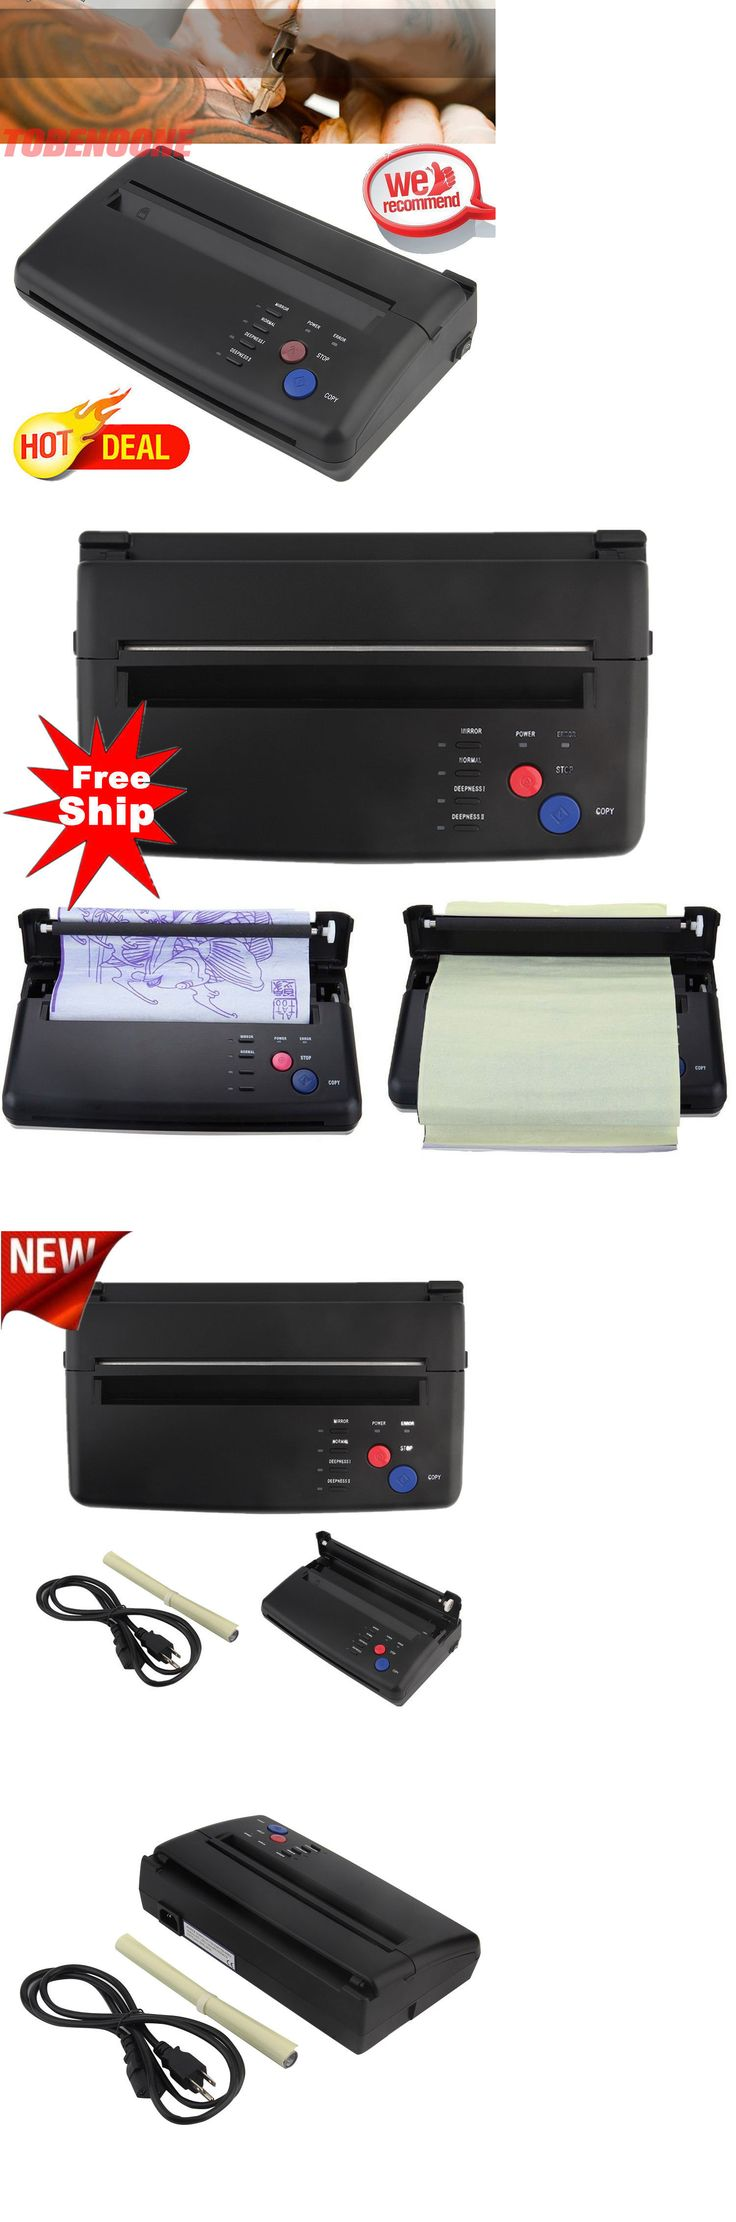 Stencils and Accessories: Tattoo Stencil Maker Transfer Machine Flash Thermal Copier Printer Supplies Oy BUY IT NOW ONLY: $114.97